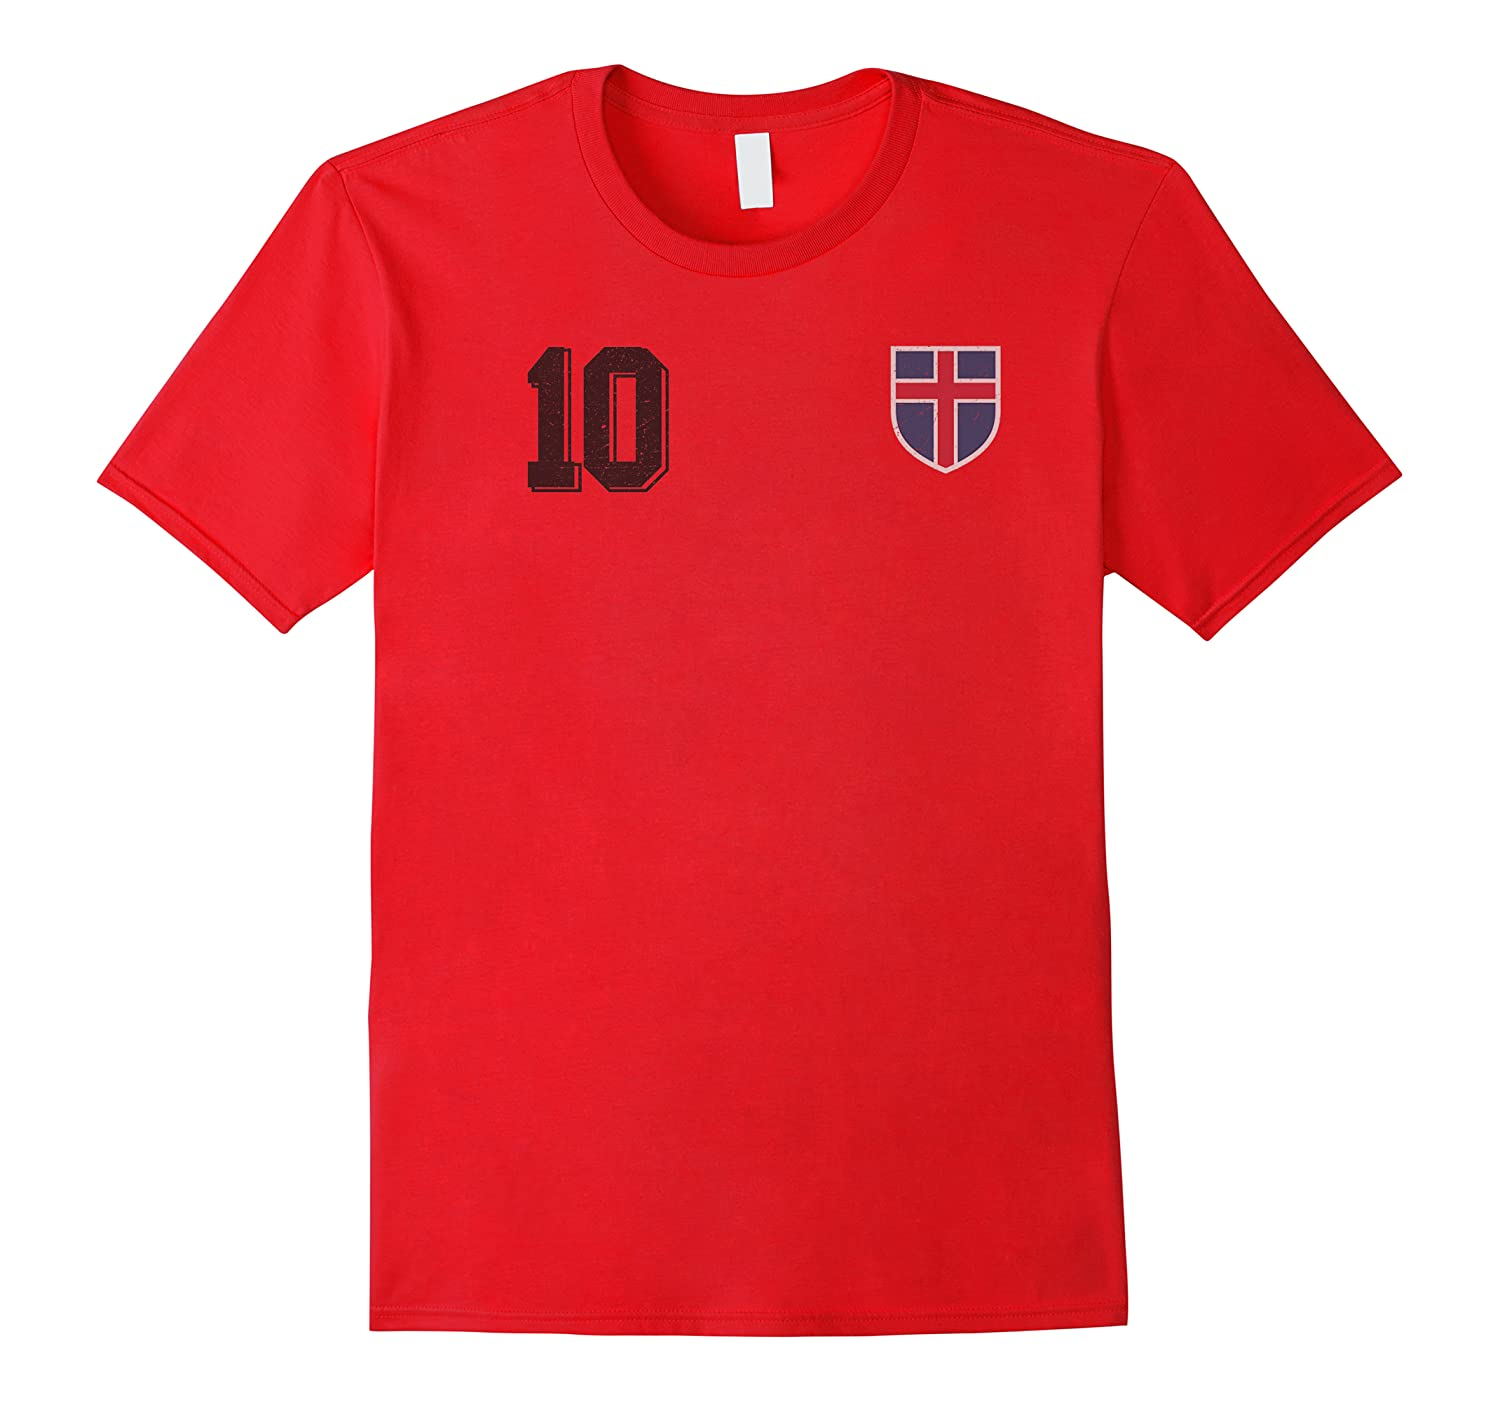 Iceland Or Island In Football Soccer Style Premium T-shirt